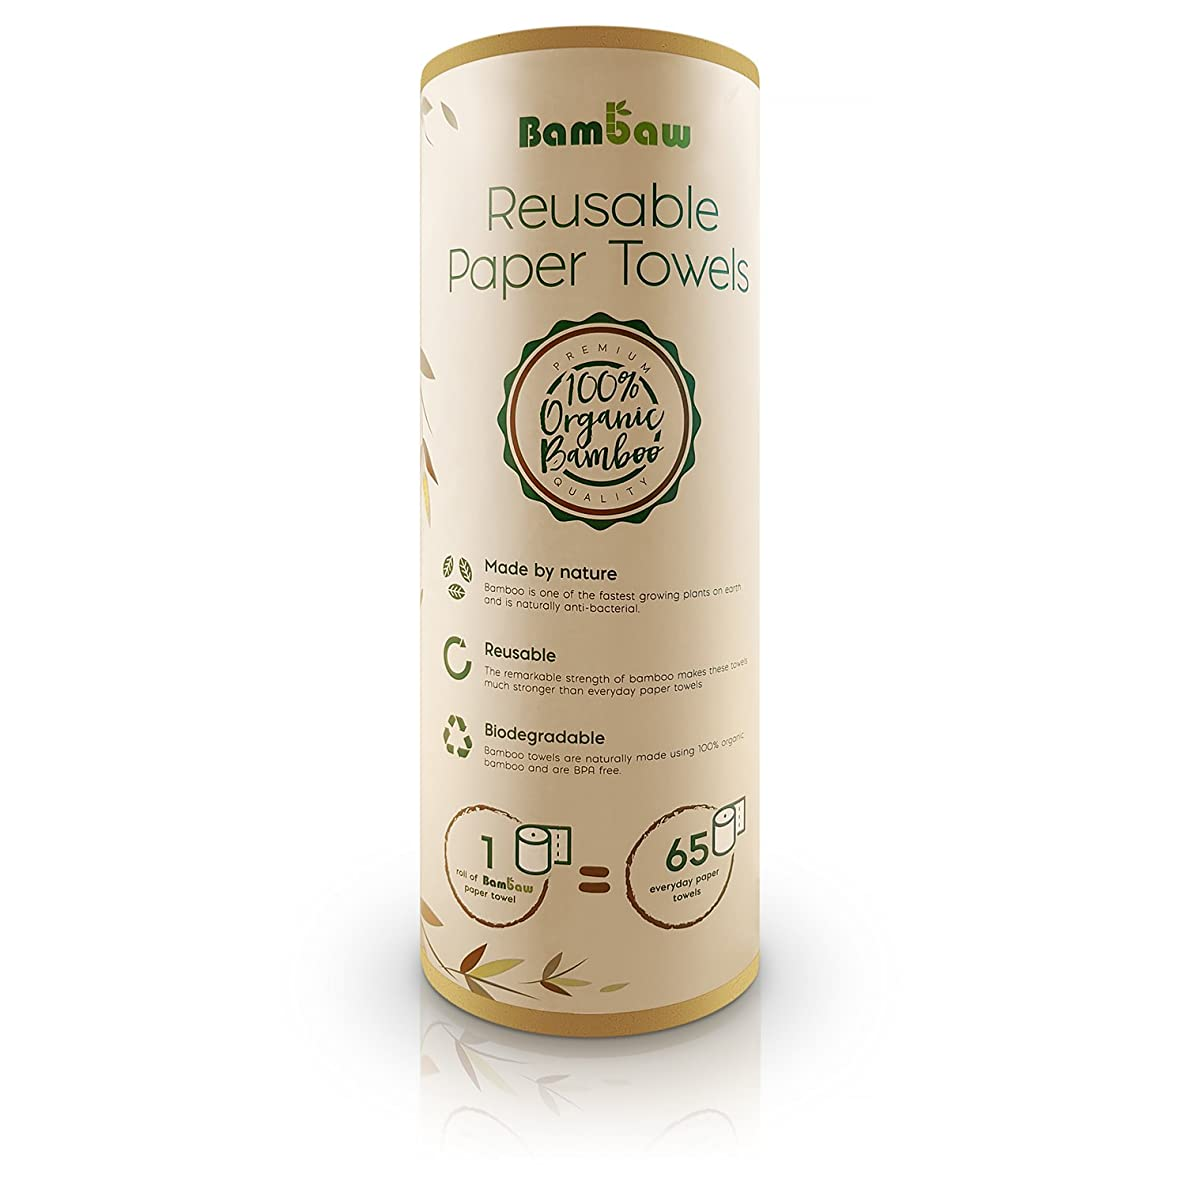 Reusable Paper Towel   Bamboo Eco kitchen roll   Multipurpose   Strong, Thick and Absorbent  100% Organic   Soft on Skin   Quick Dry and Antibacterial   20 Reusable Sheets   Bambaw